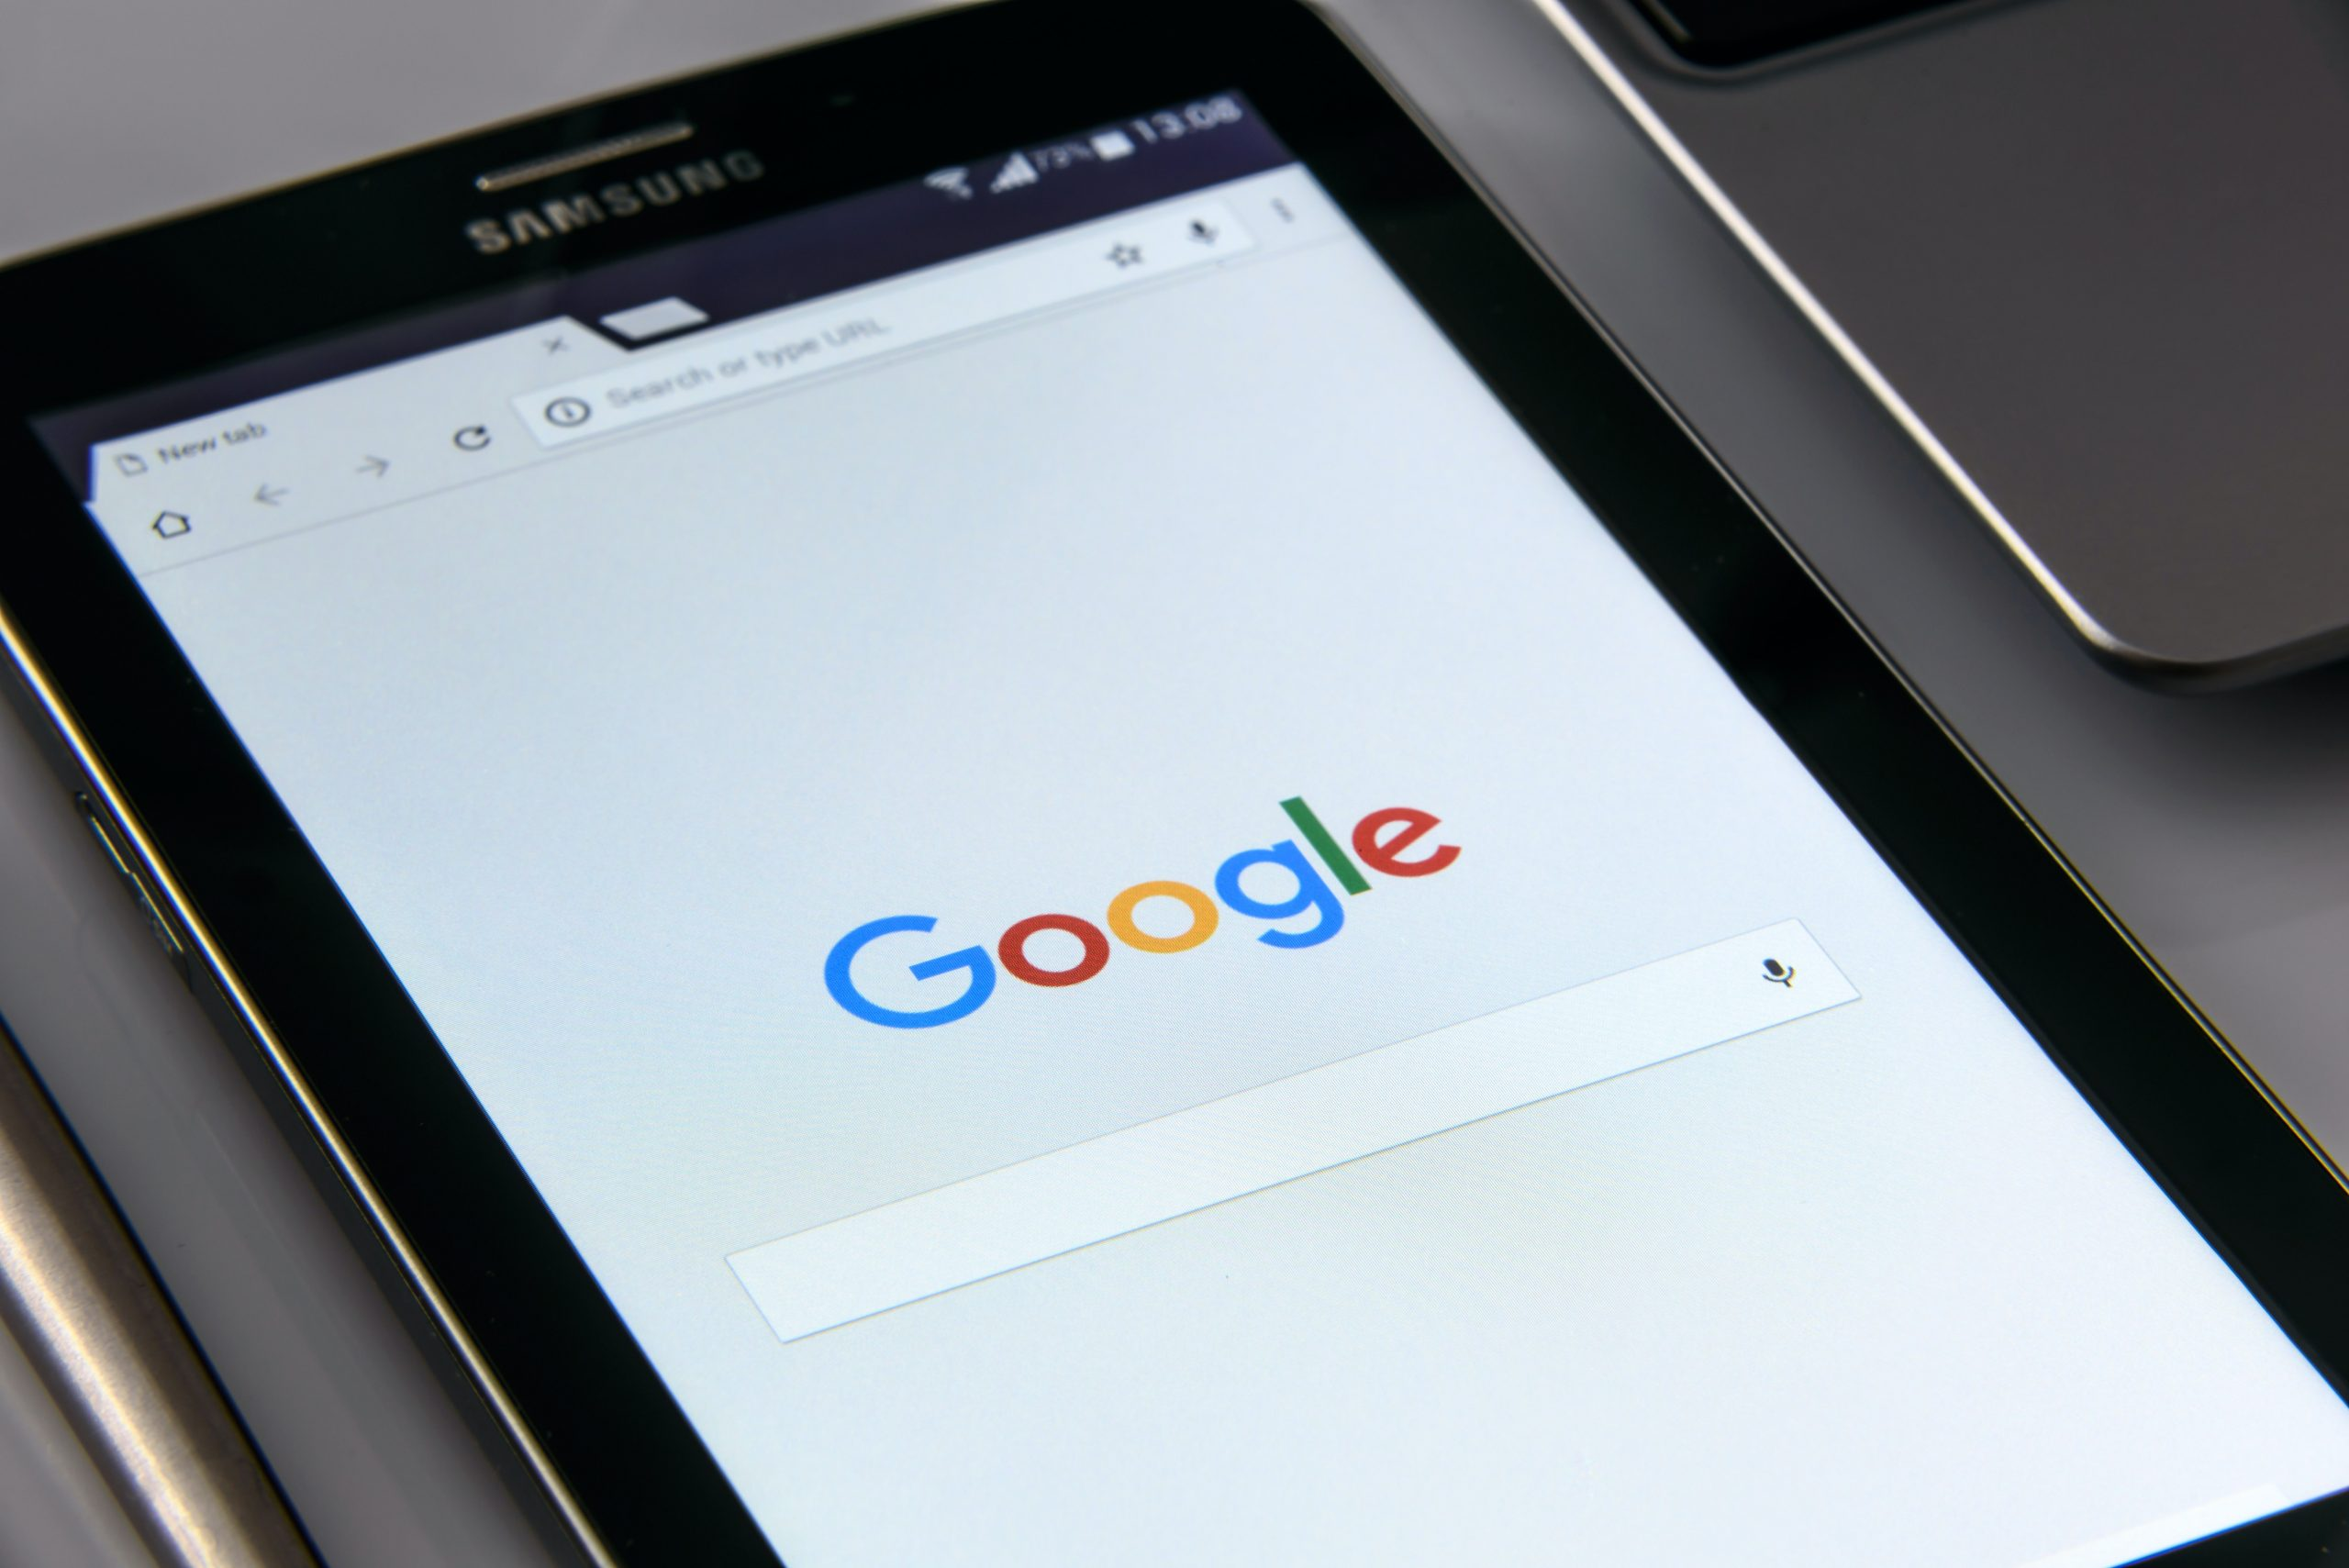 tablet with google search tool